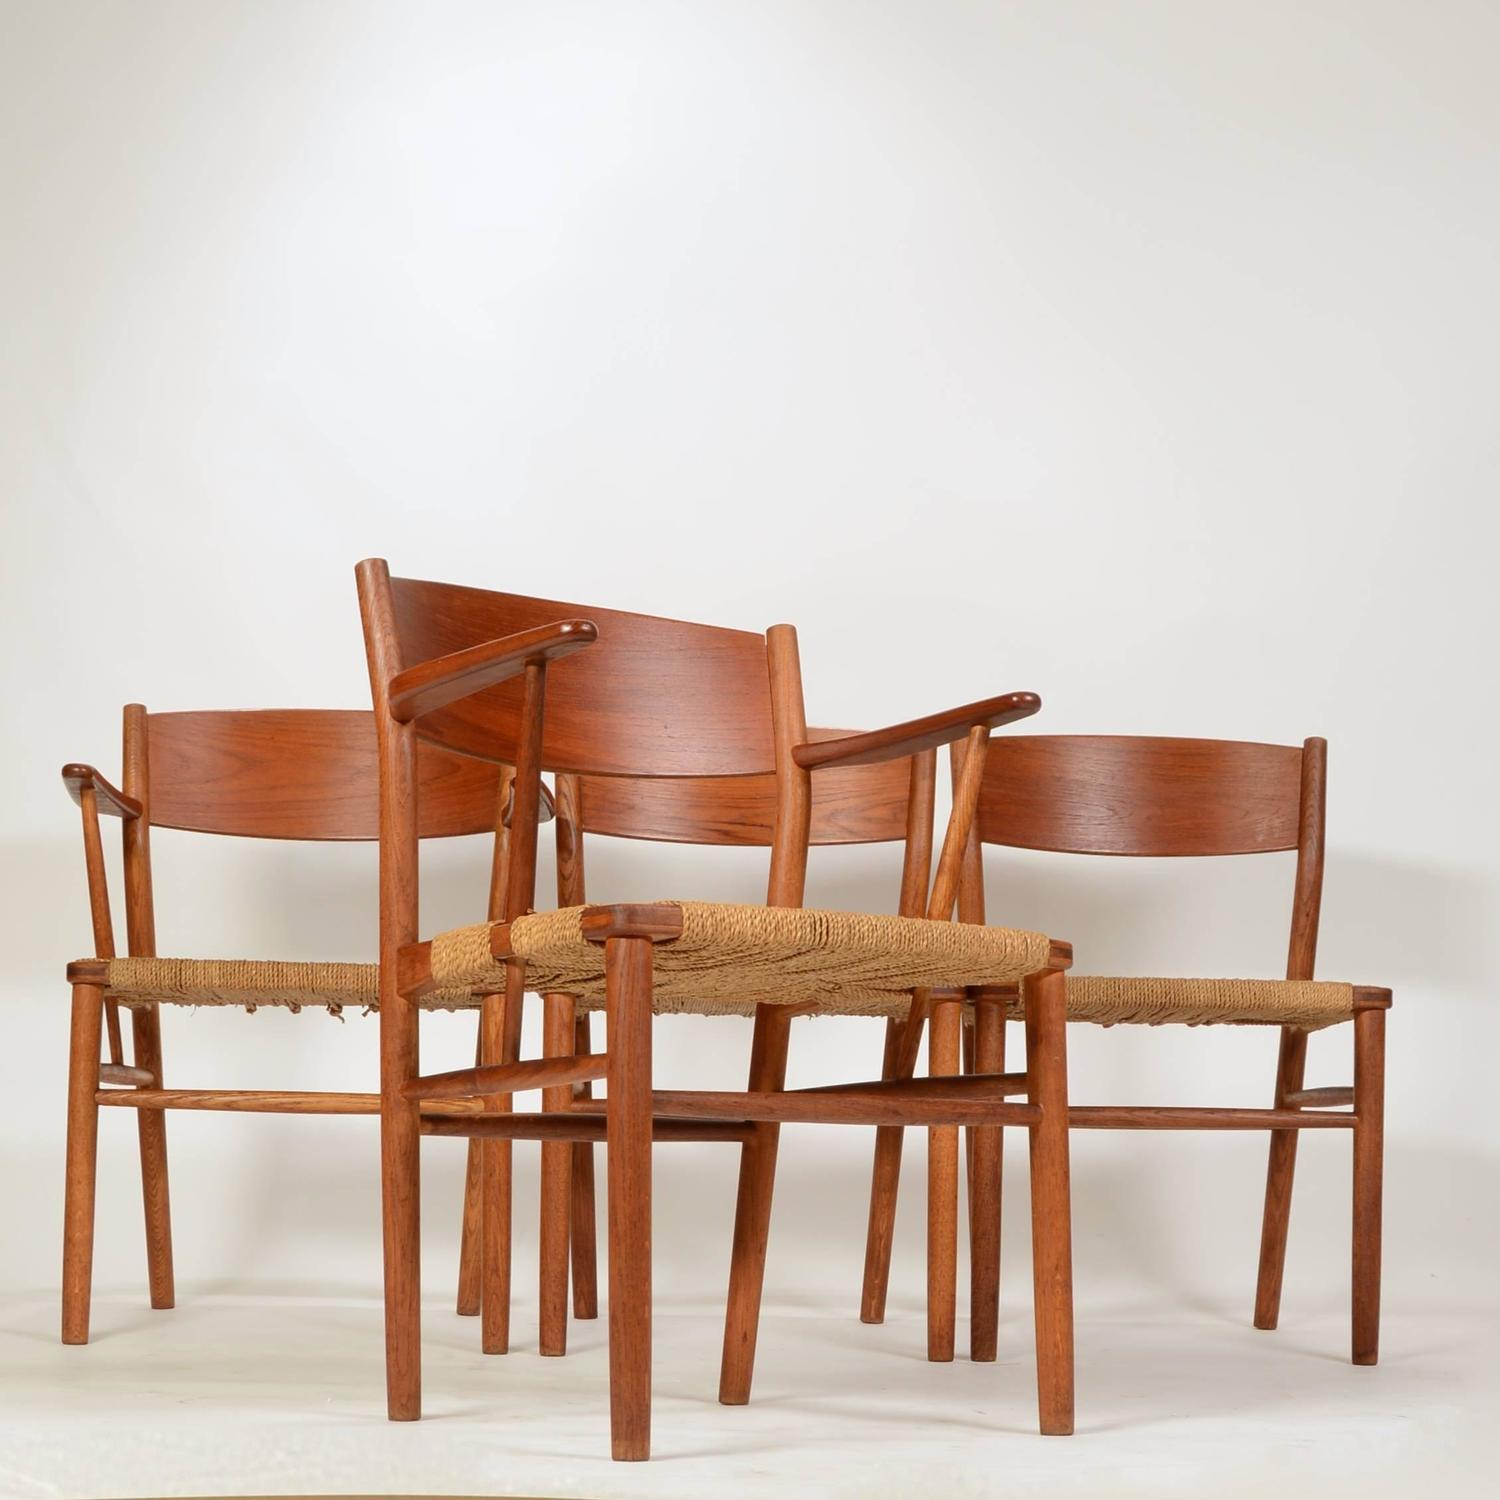 seagrass dining chairs takara belmont barber chair parts set of four børge mogensen for sale